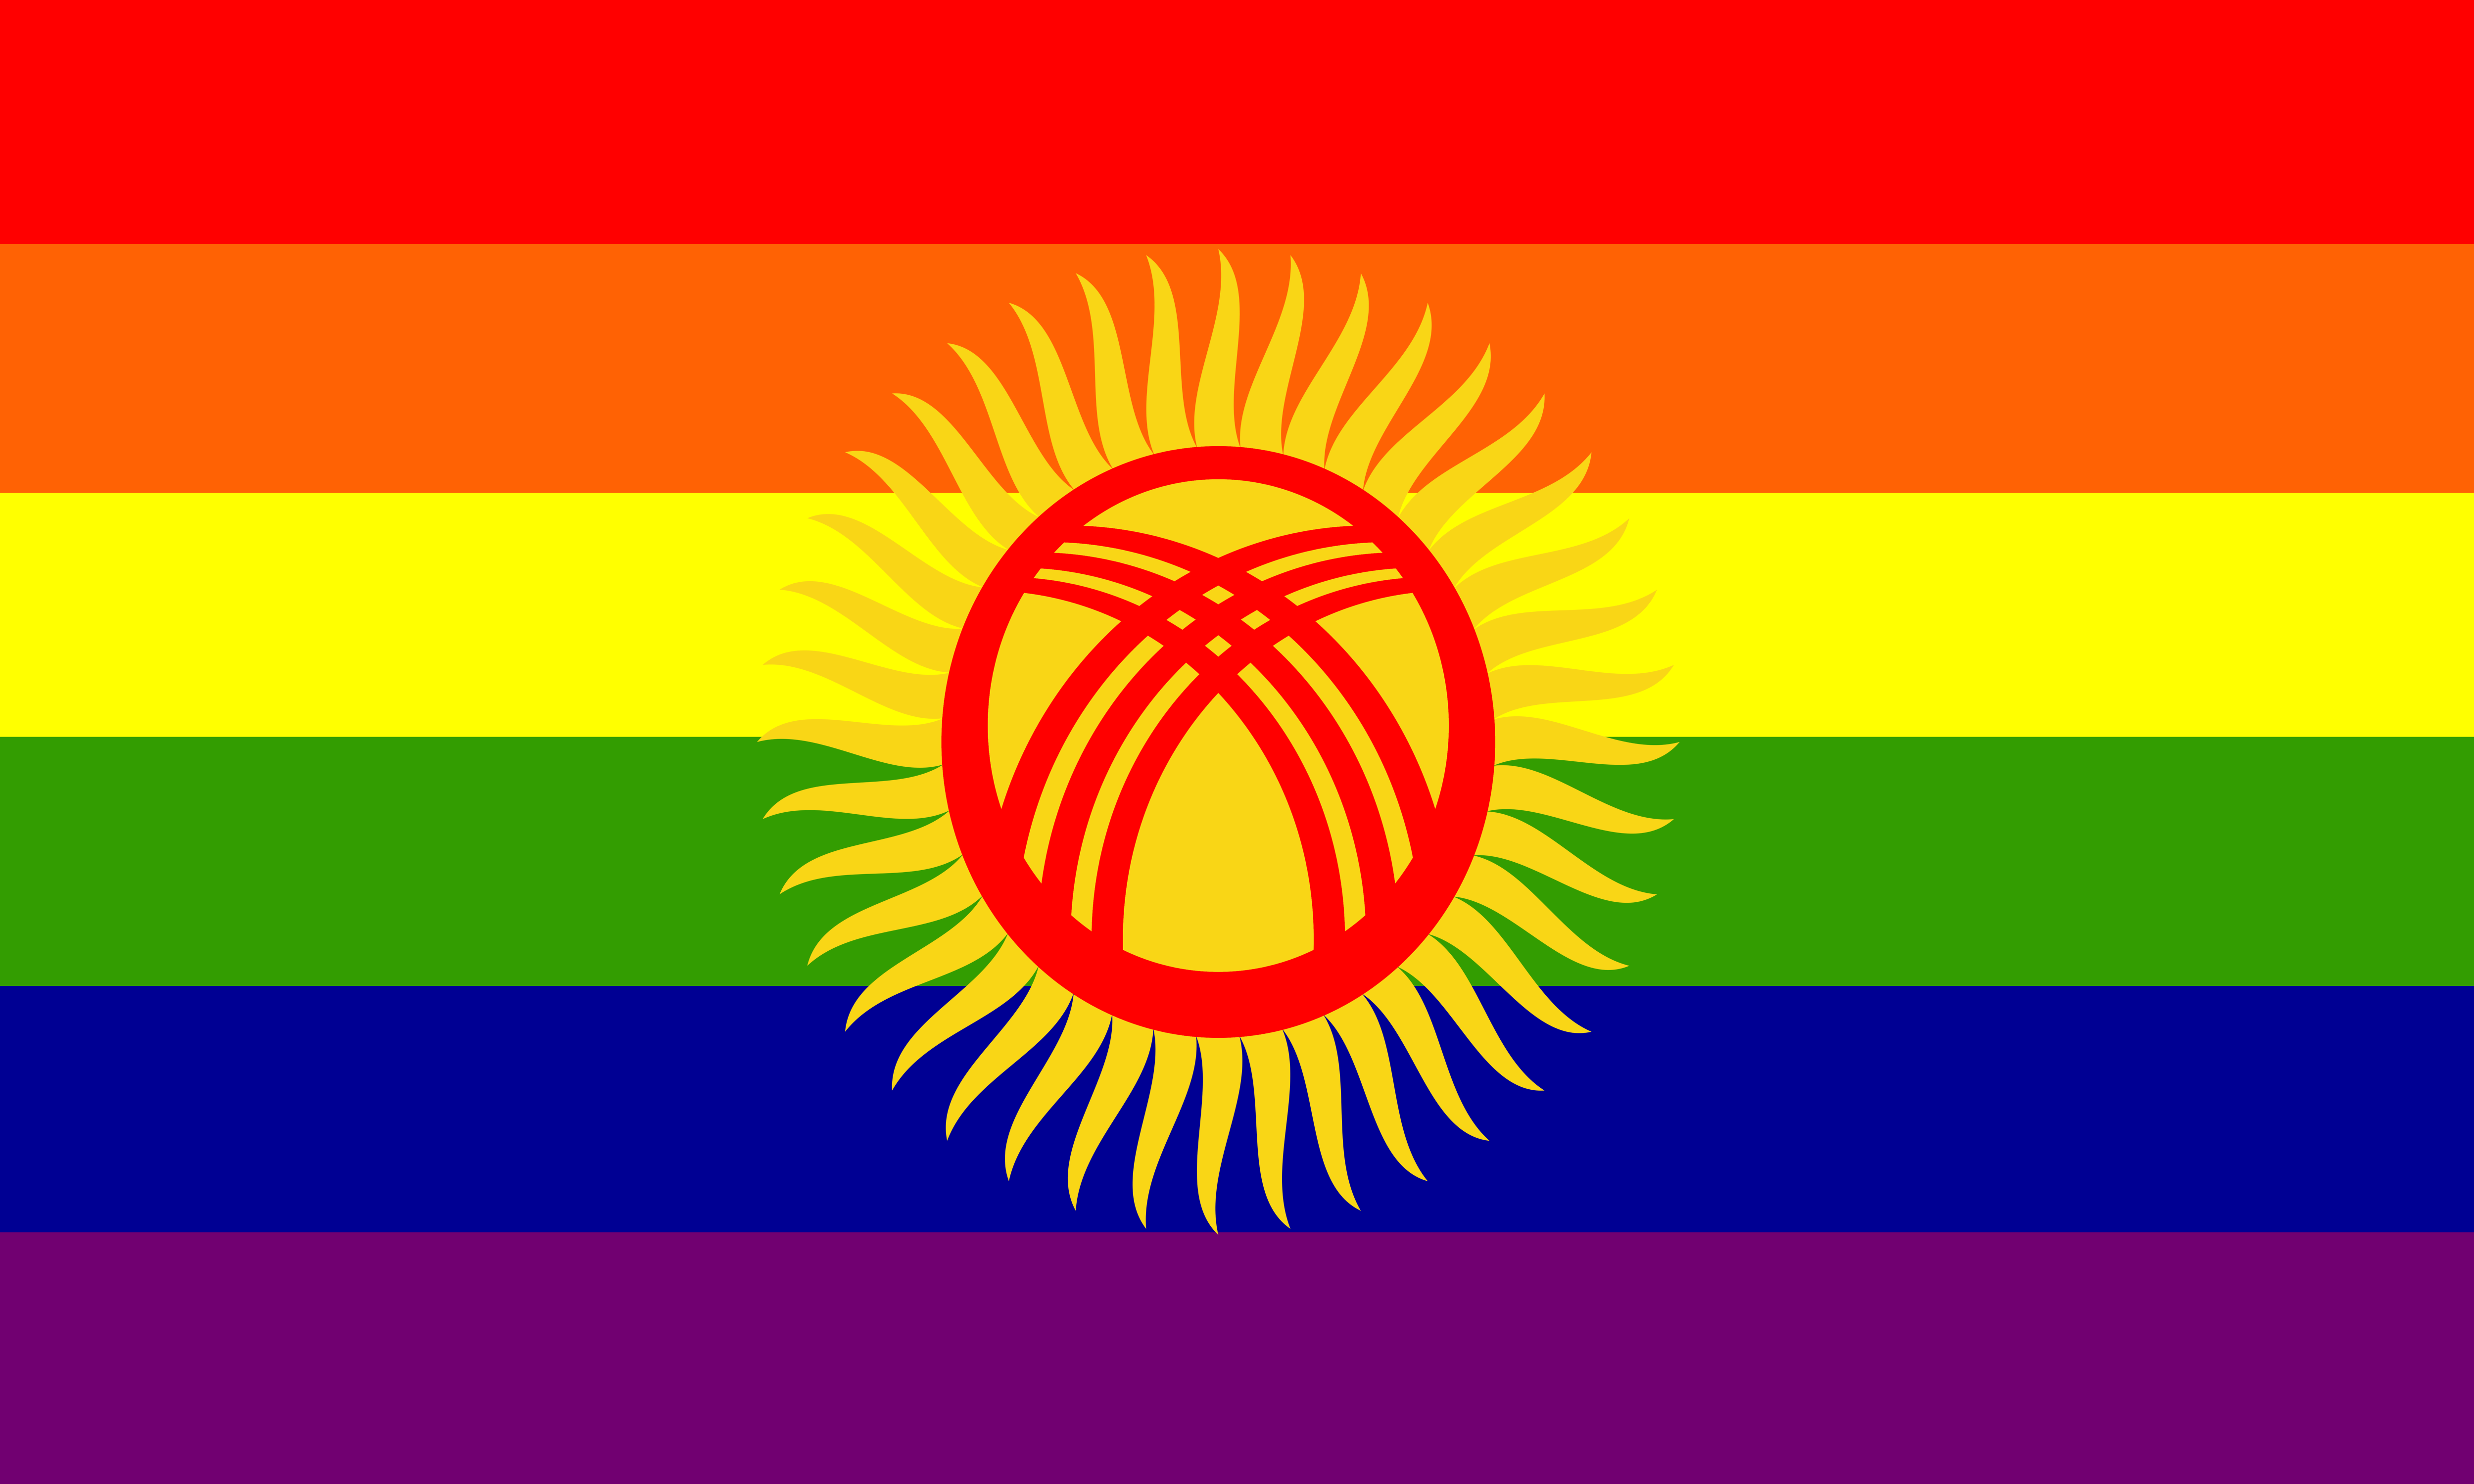 5000x3000 > Flag Of Kyrgyzstan Wallpapers